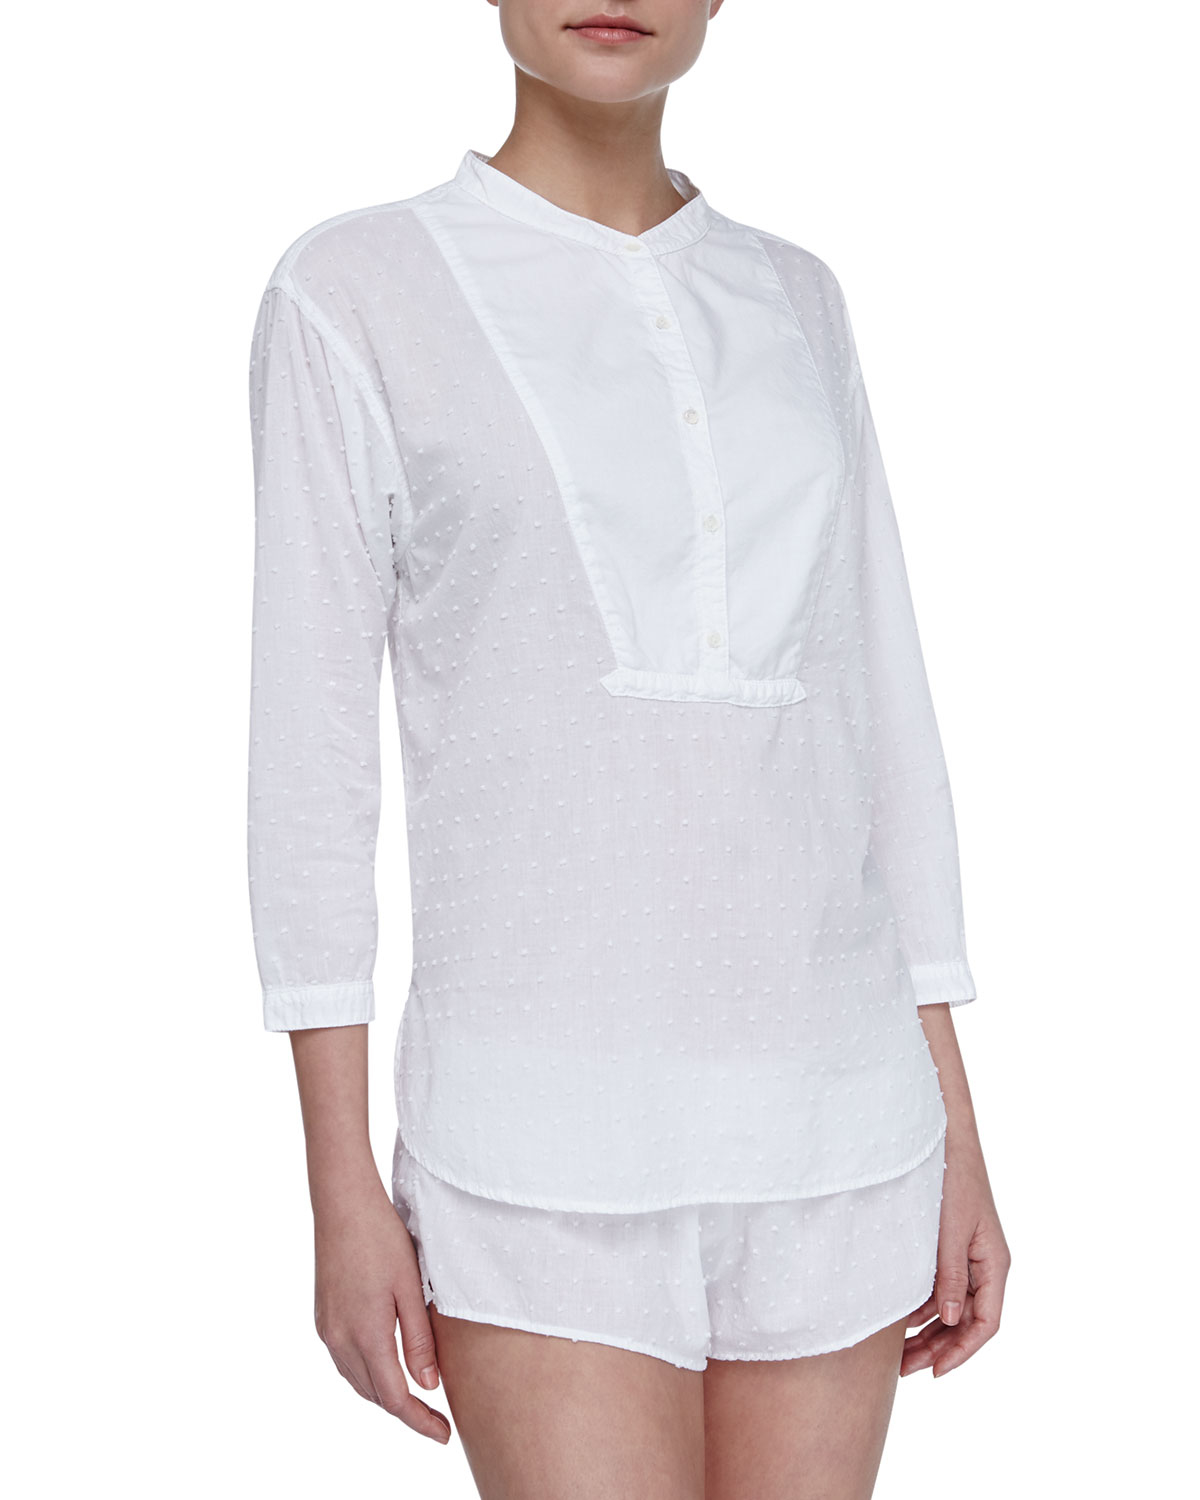 Old Navy has a collection of cotton shirts that provides a stylish look and a comfortable fit. Choose from cotton shirts in a wide selection of fabulous styles and colors.